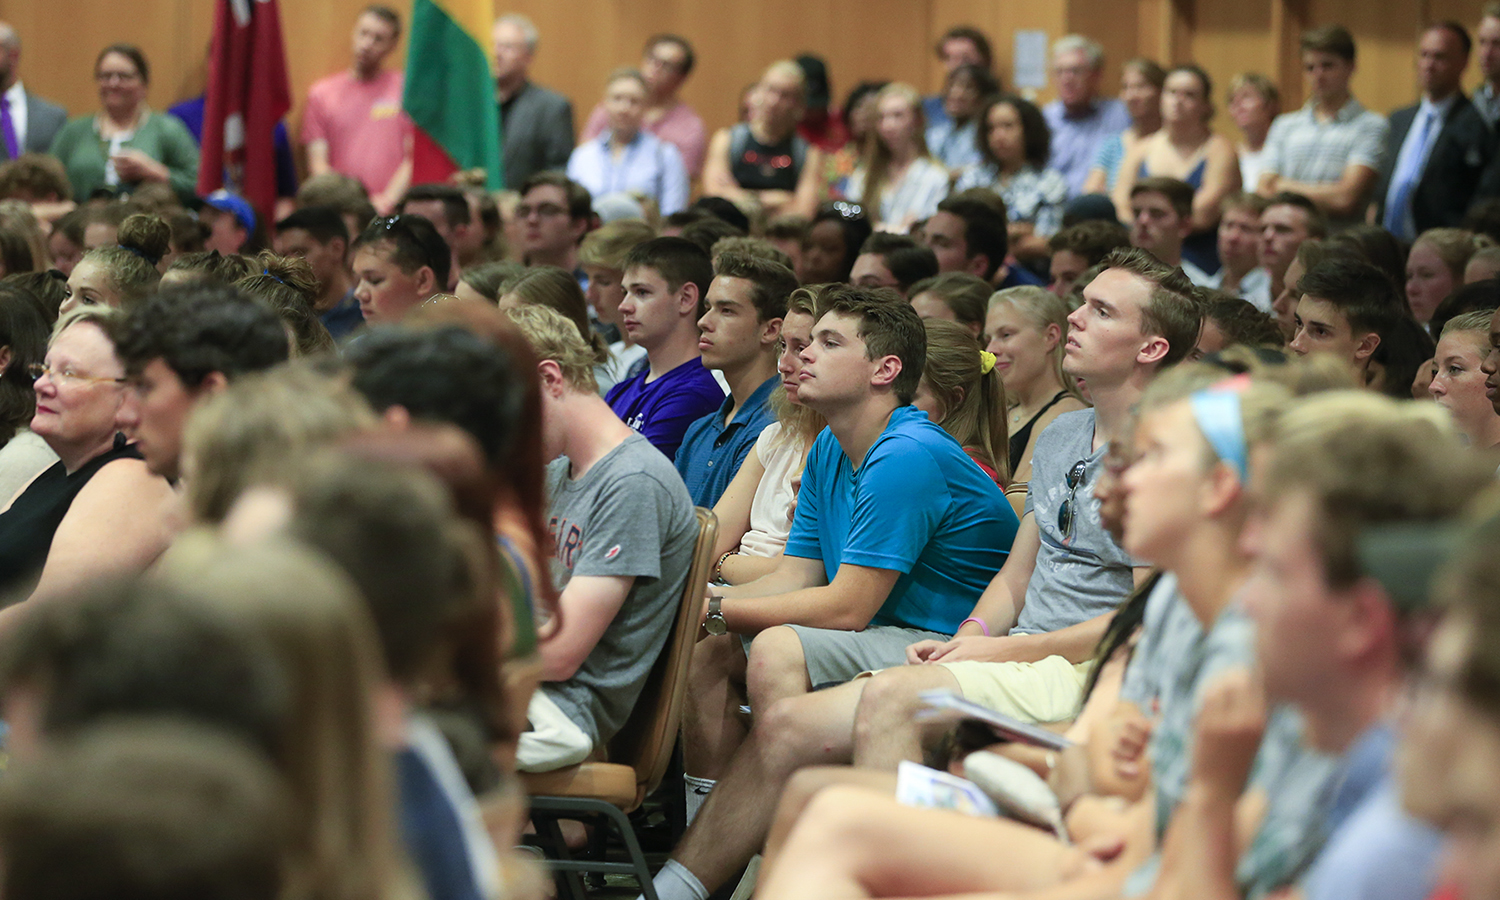 Students listen during the Convocation 2018 keynote address delivered by Margarita Ramos '85.